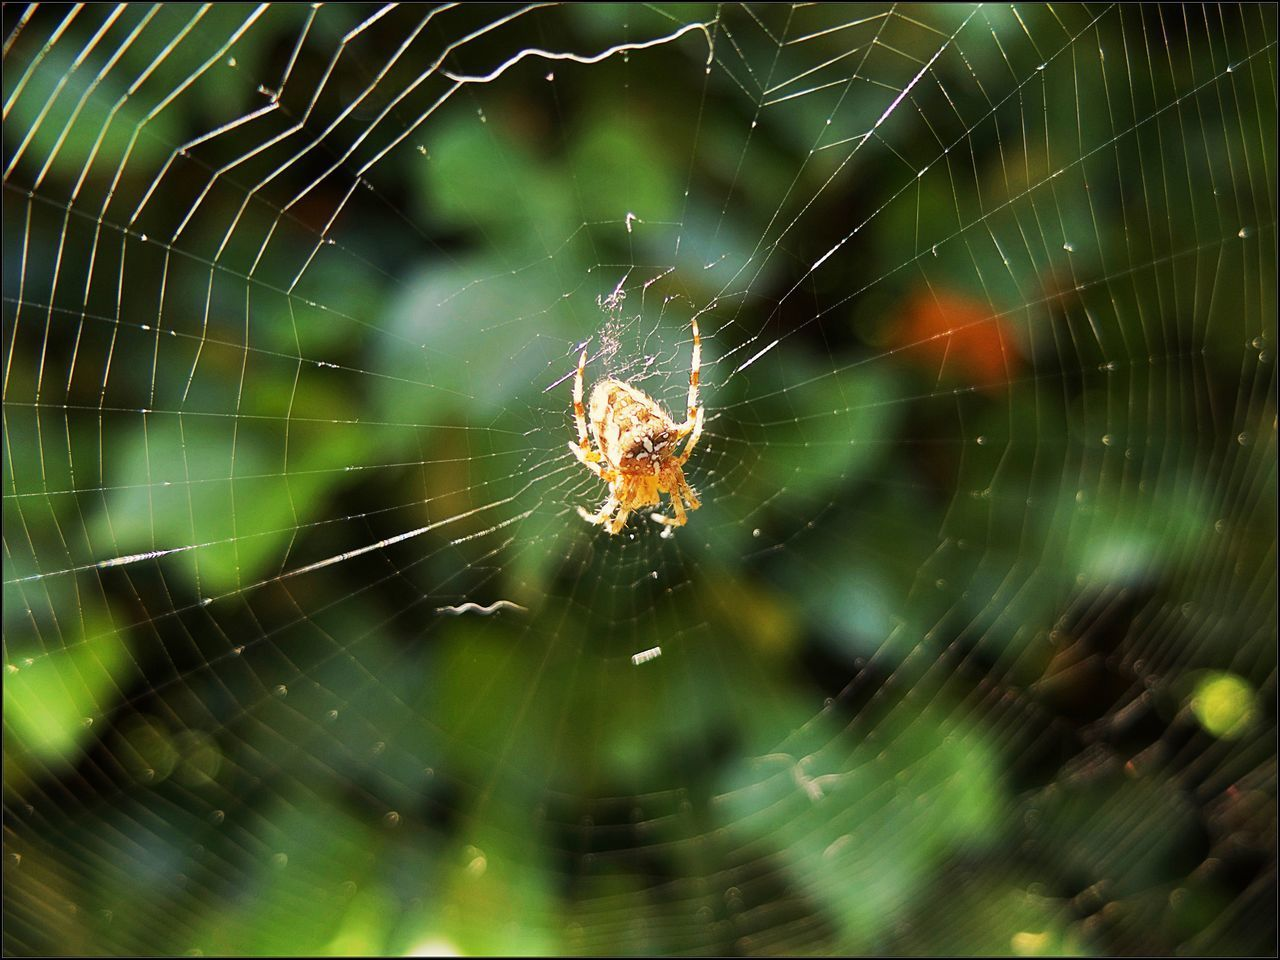 spider web, fragility, animal themes, animal, arachnid, animals in the wild, animal wildlife, invertebrate, one animal, spider, arthropod, close-up, focus on foreground, vulnerability, insect, nature, selective focus, day, survival, no people, web, outdoors, animal leg, complexity